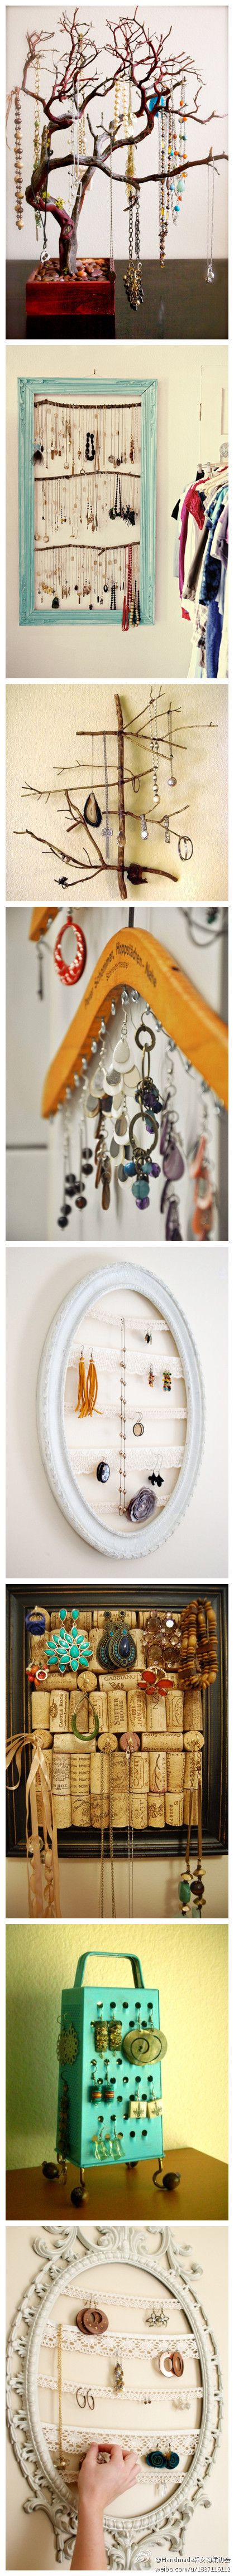 I love all of these ideas! i feel like my jewelery gets lost in my jewelery box and rarely worn and my hanger is always a mess. Def going to start the hunt for my next DIY project you'll know its done when you see me start actually wearing my jewelery!!